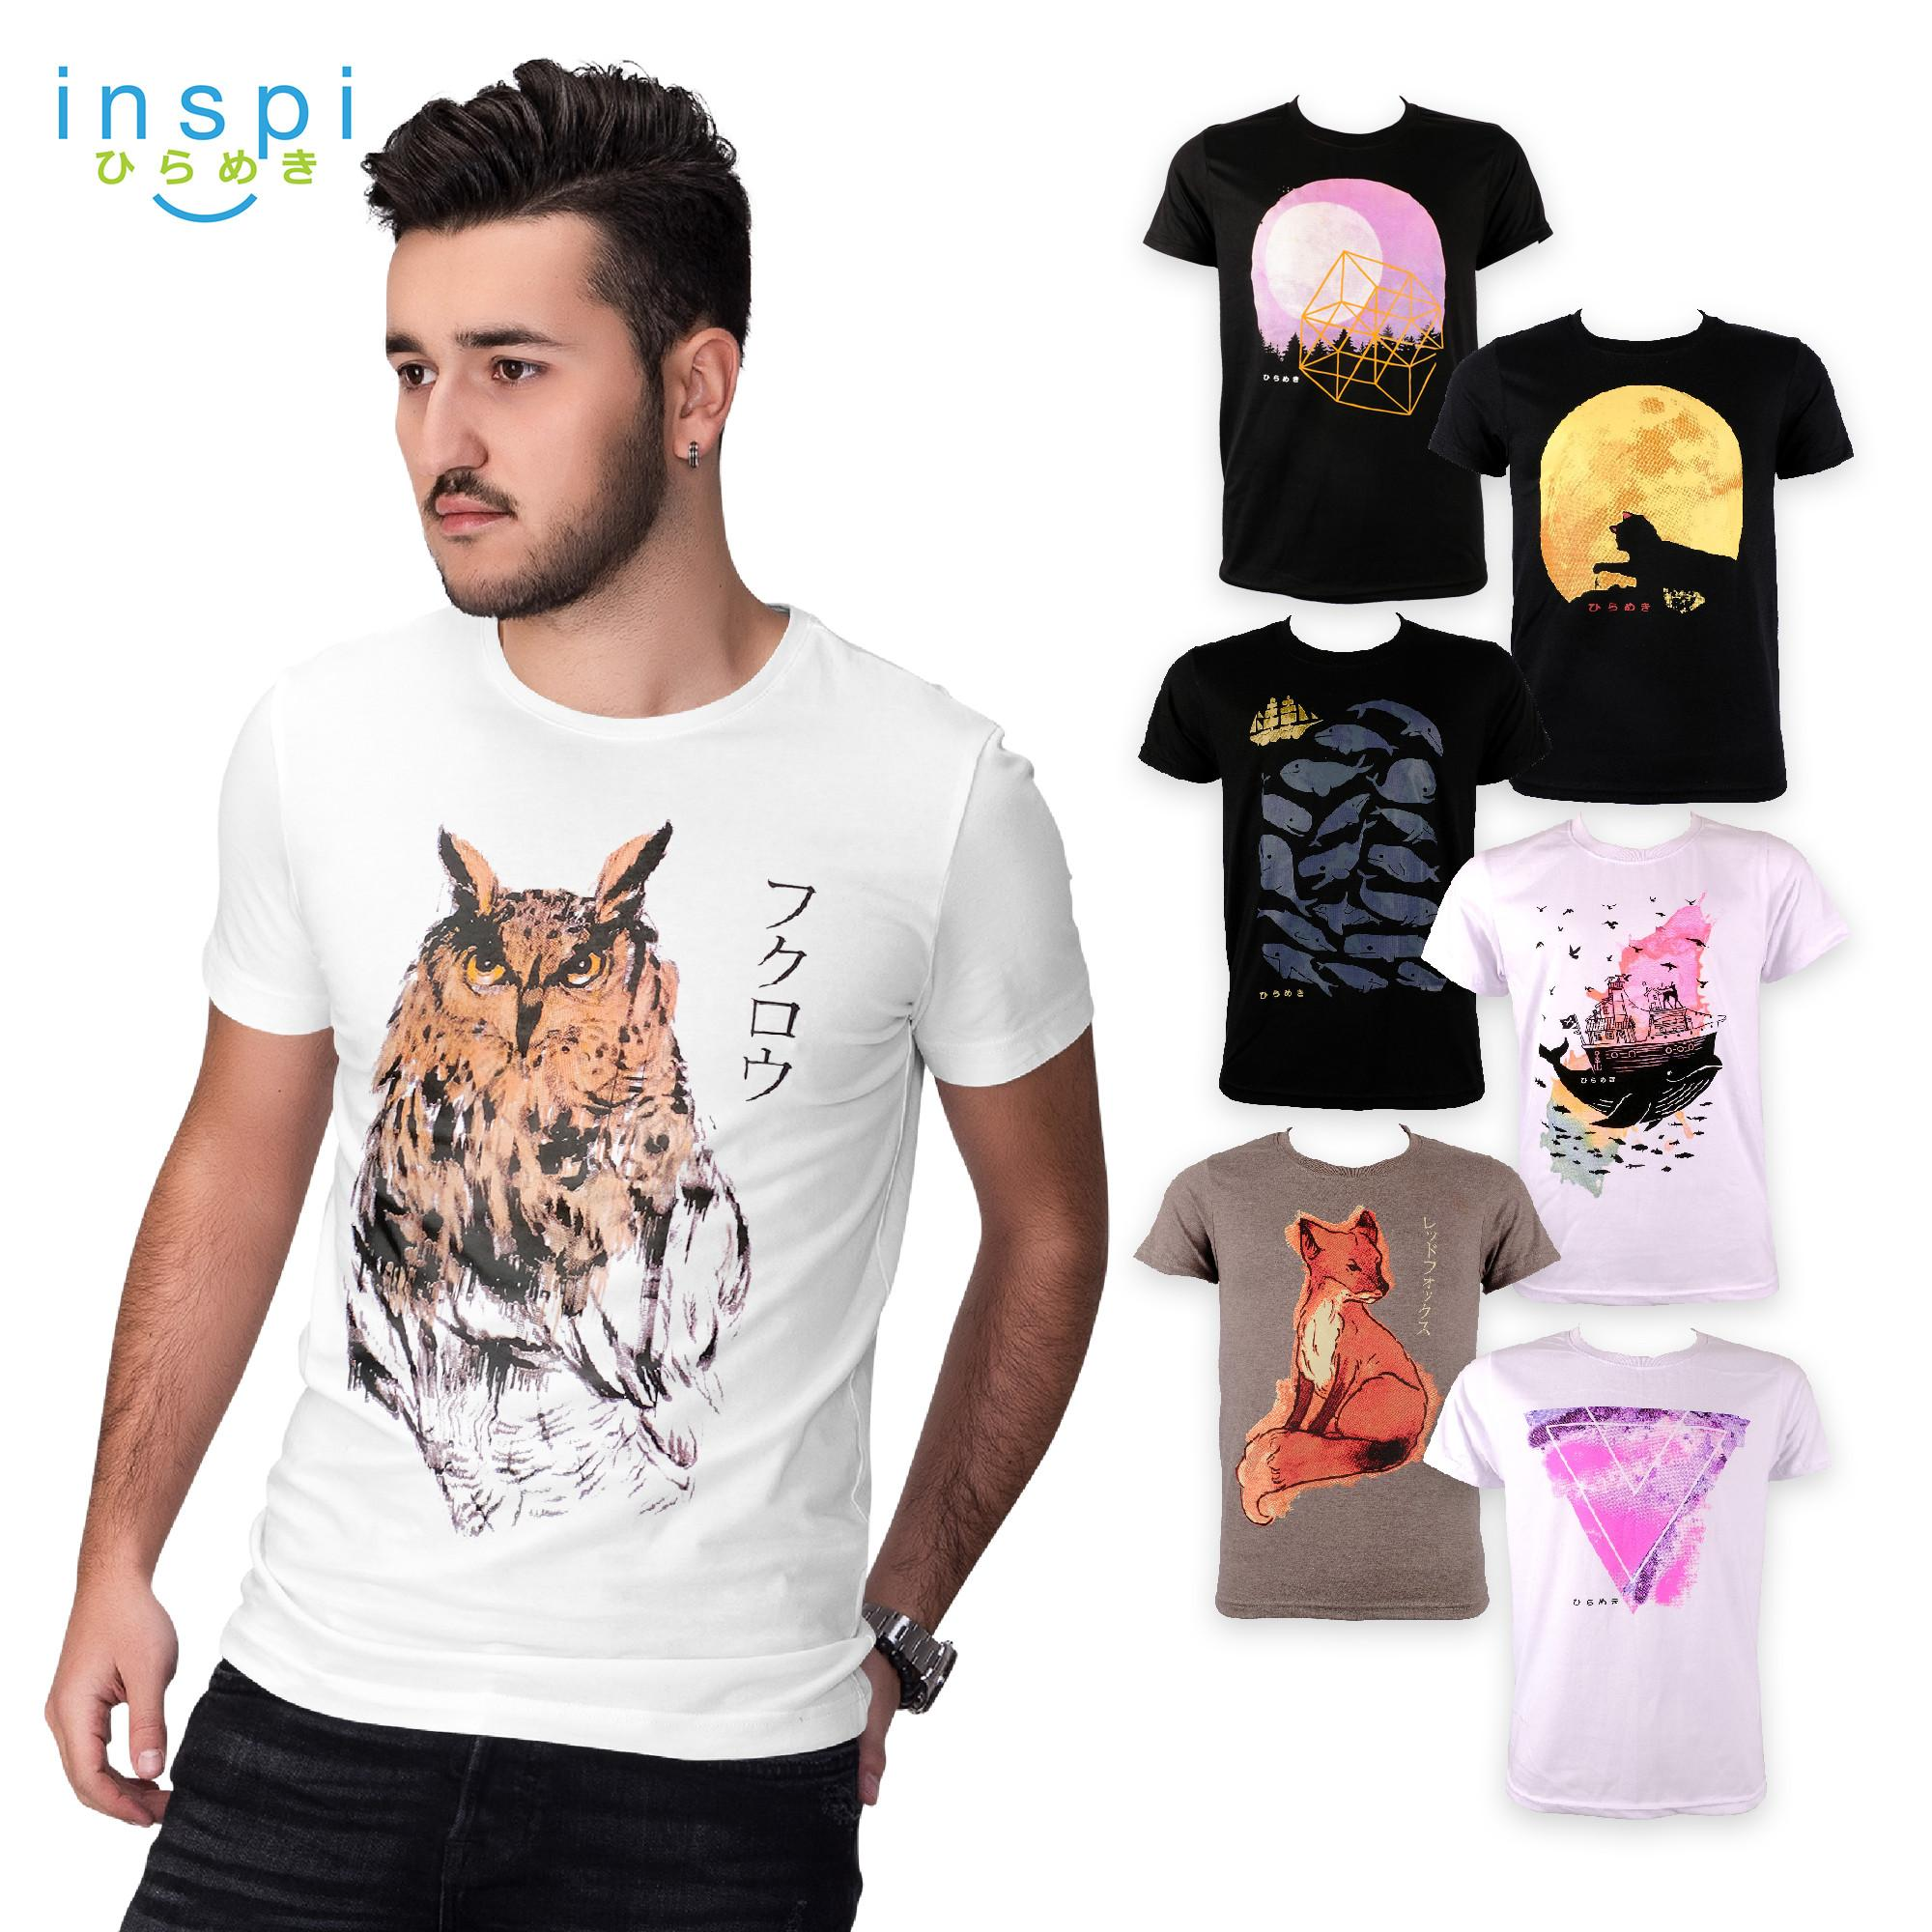 794ef569aa2 INSPI Tees Water Color Collection tshirt printed graphic tee Mens t shirt  shirts for men tshirts